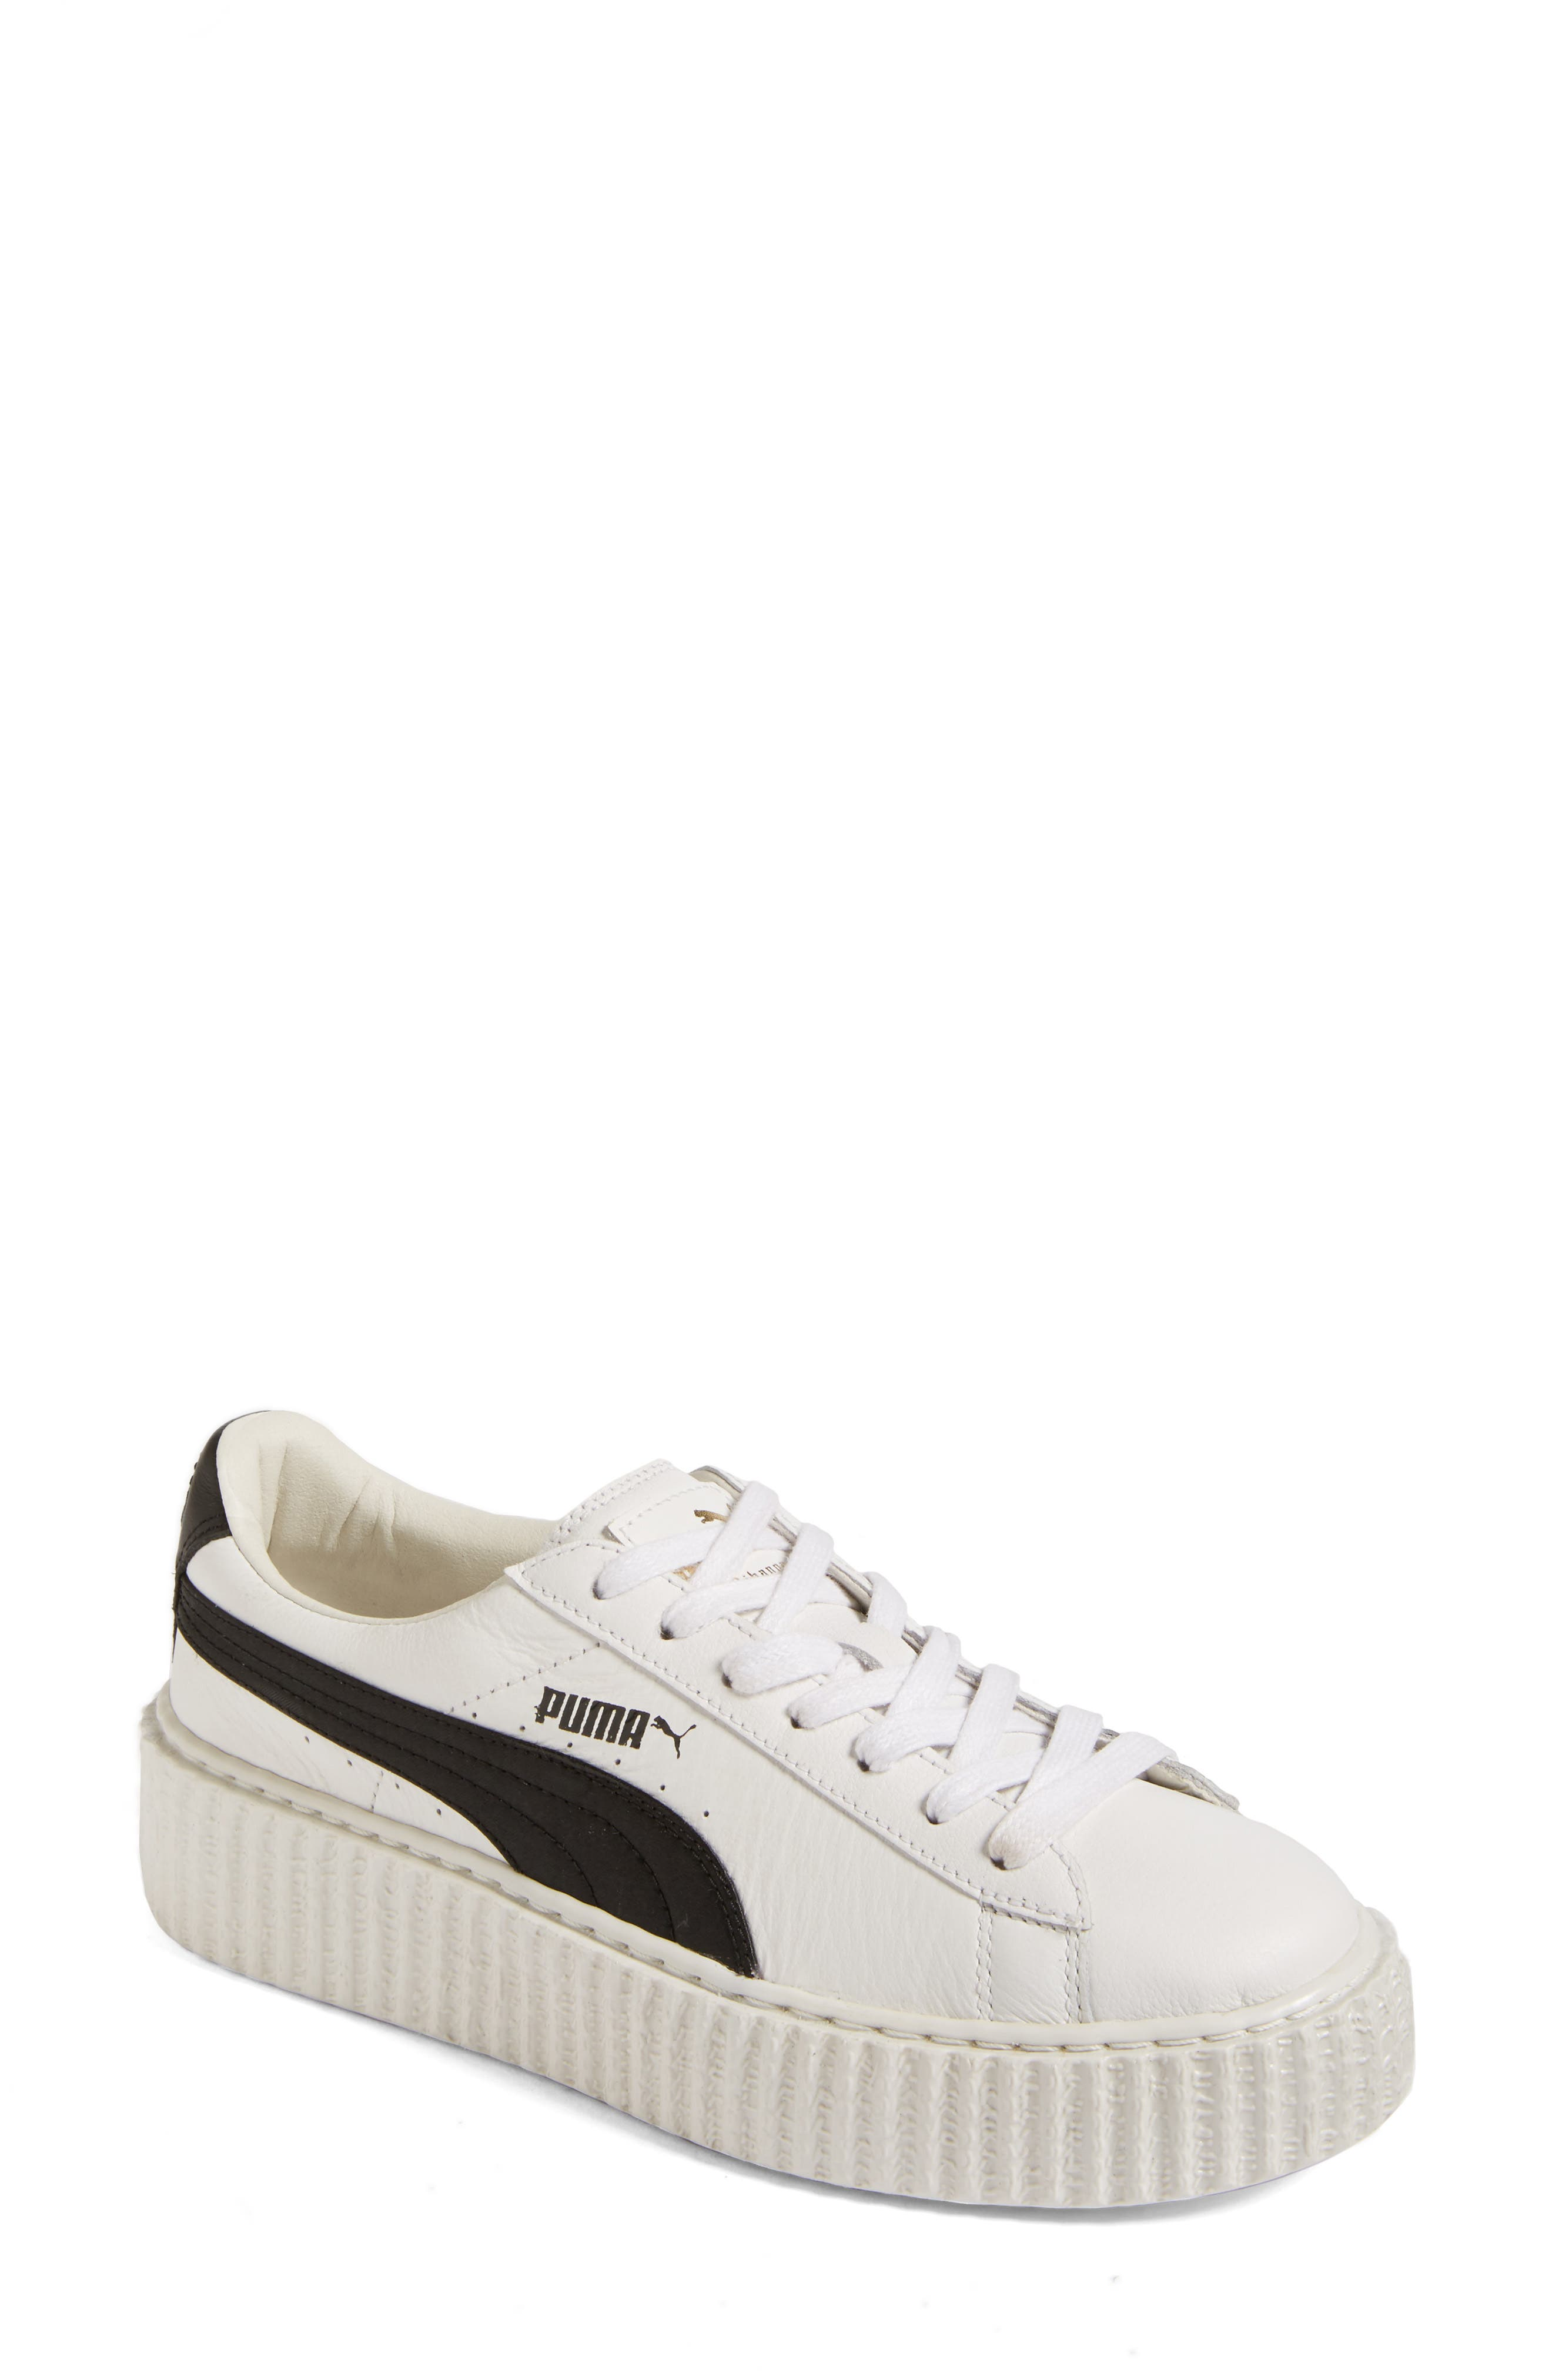 FENTY PUMA by Rihanna Creeper Sneaker,                             Main thumbnail 1, color,                             White Leather